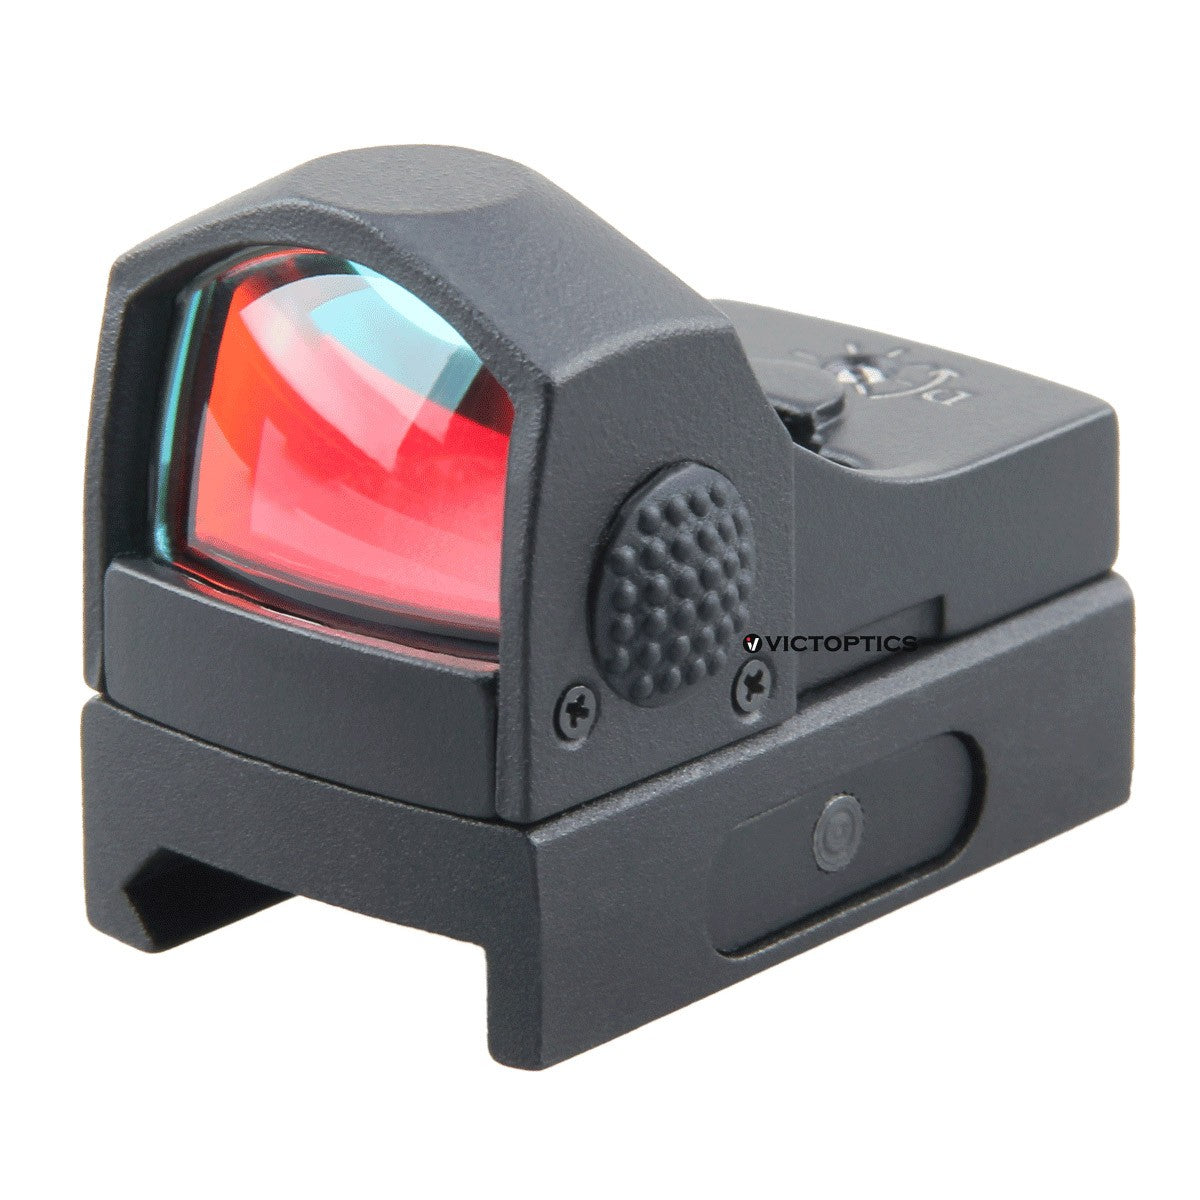 Victoptics SPX 1x22 Red Dot Sight